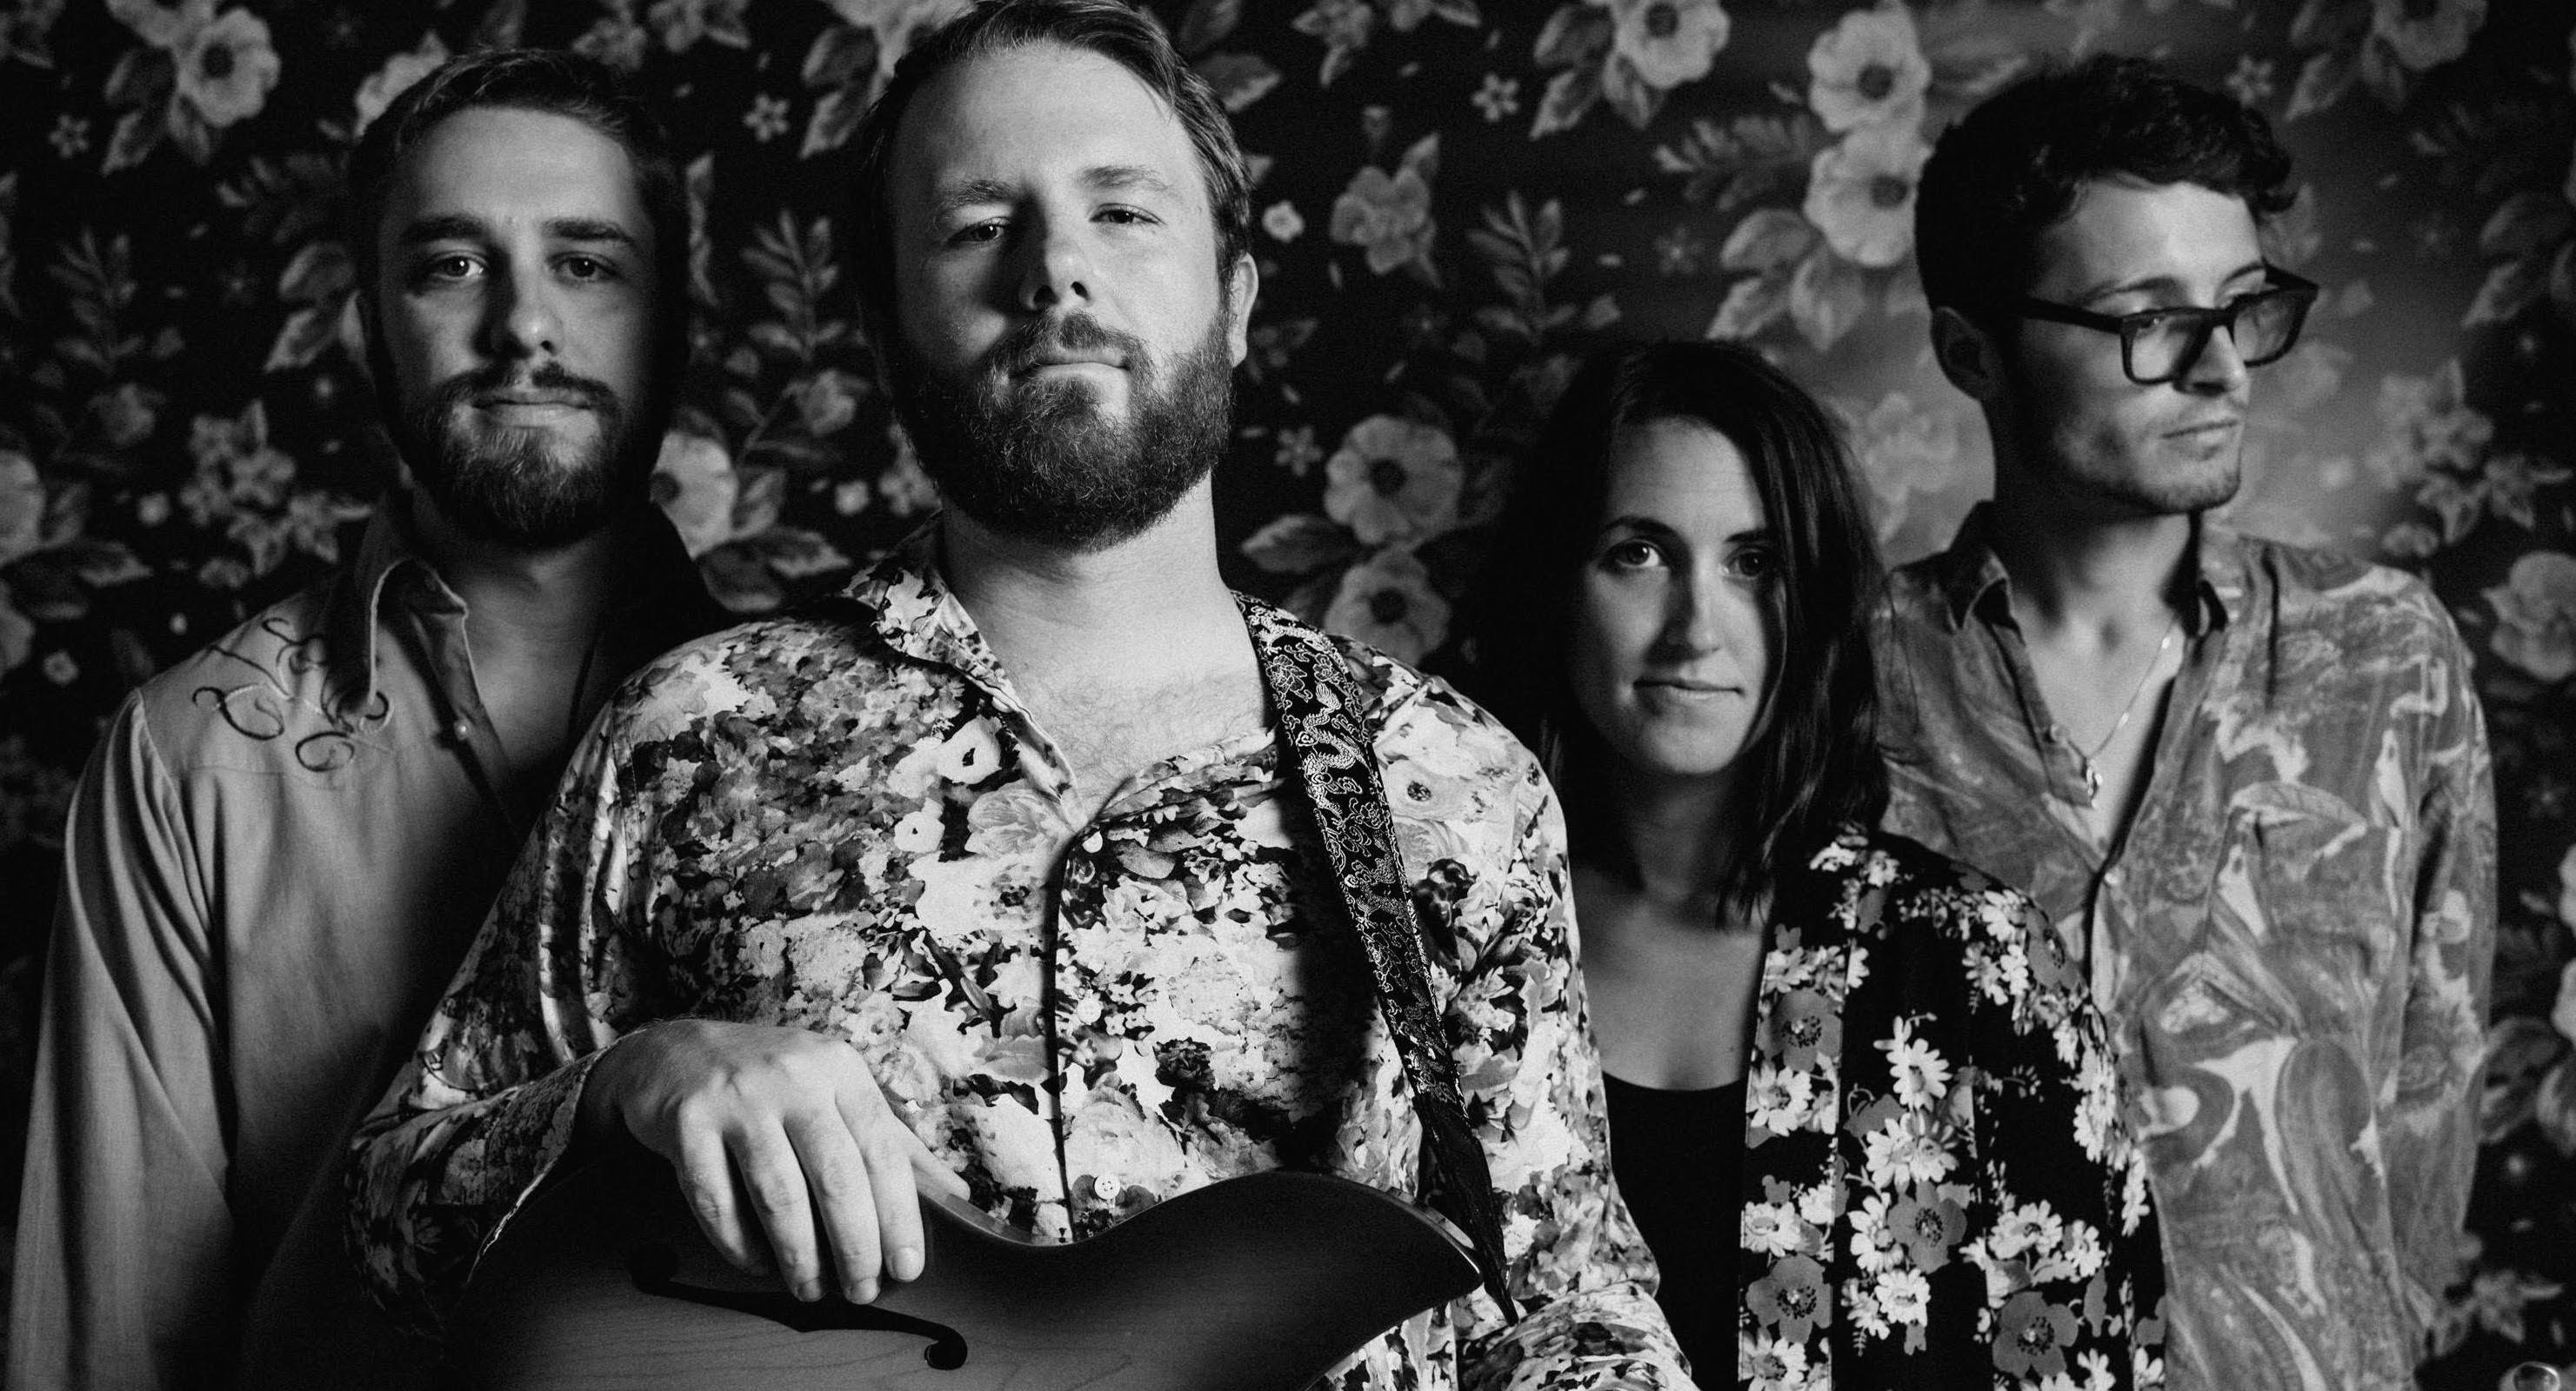 MMS Presents: An Interview With Charleston's Indie Rock Quartet The High Divers